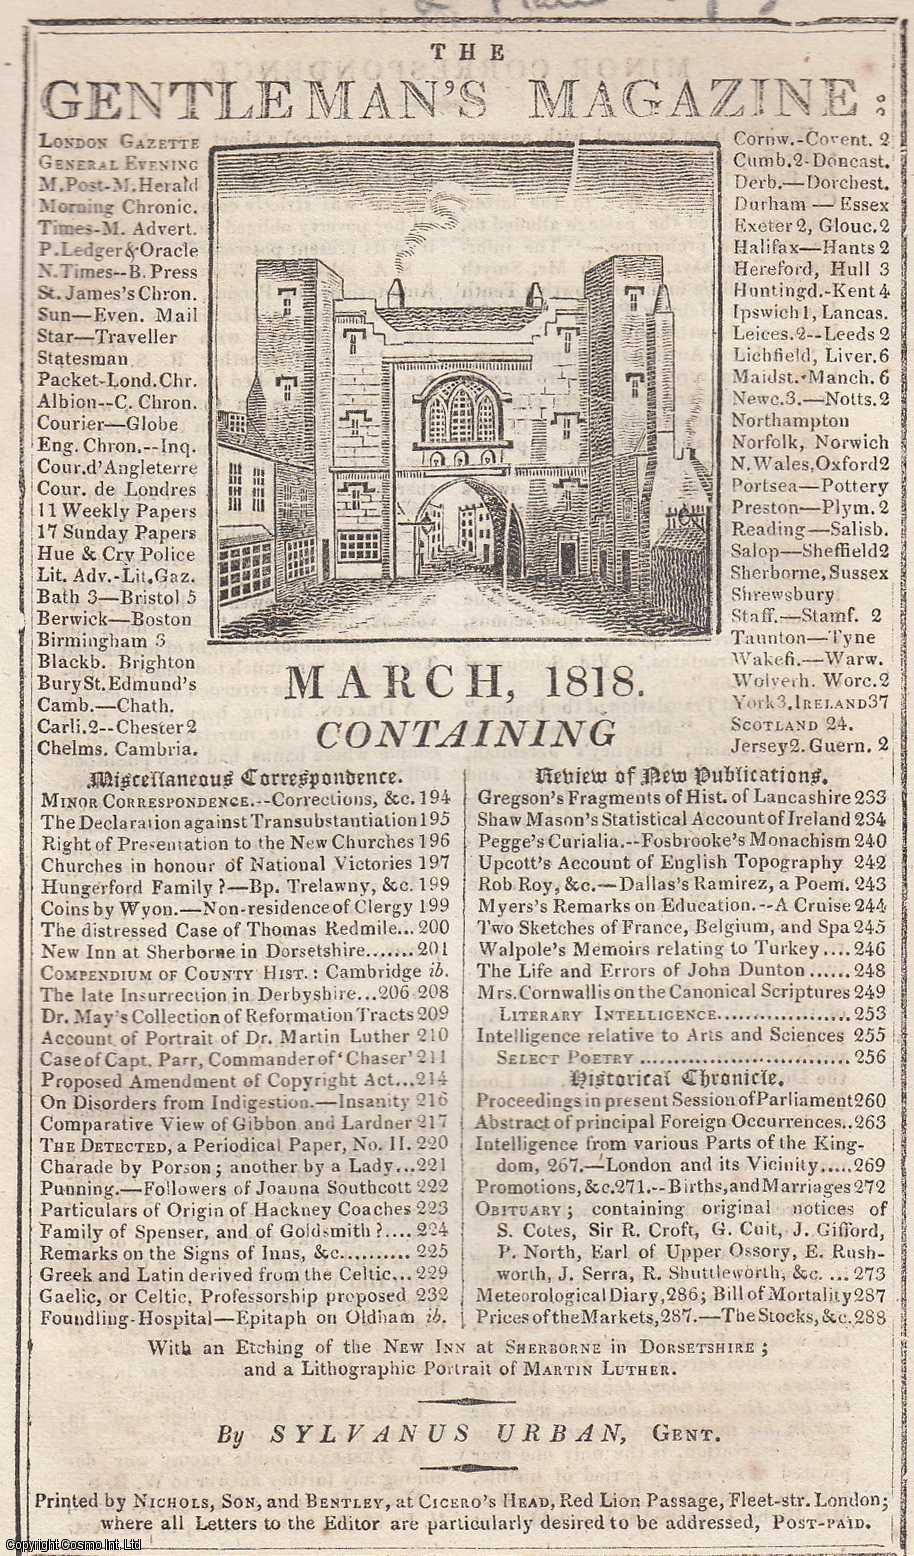 The Gentleman's Magazine for March 1818.  FEATURING Two Plates; New Inn at Sherborne & Lithographic Portrait of Martin Luther., Urban, Sylvanus.